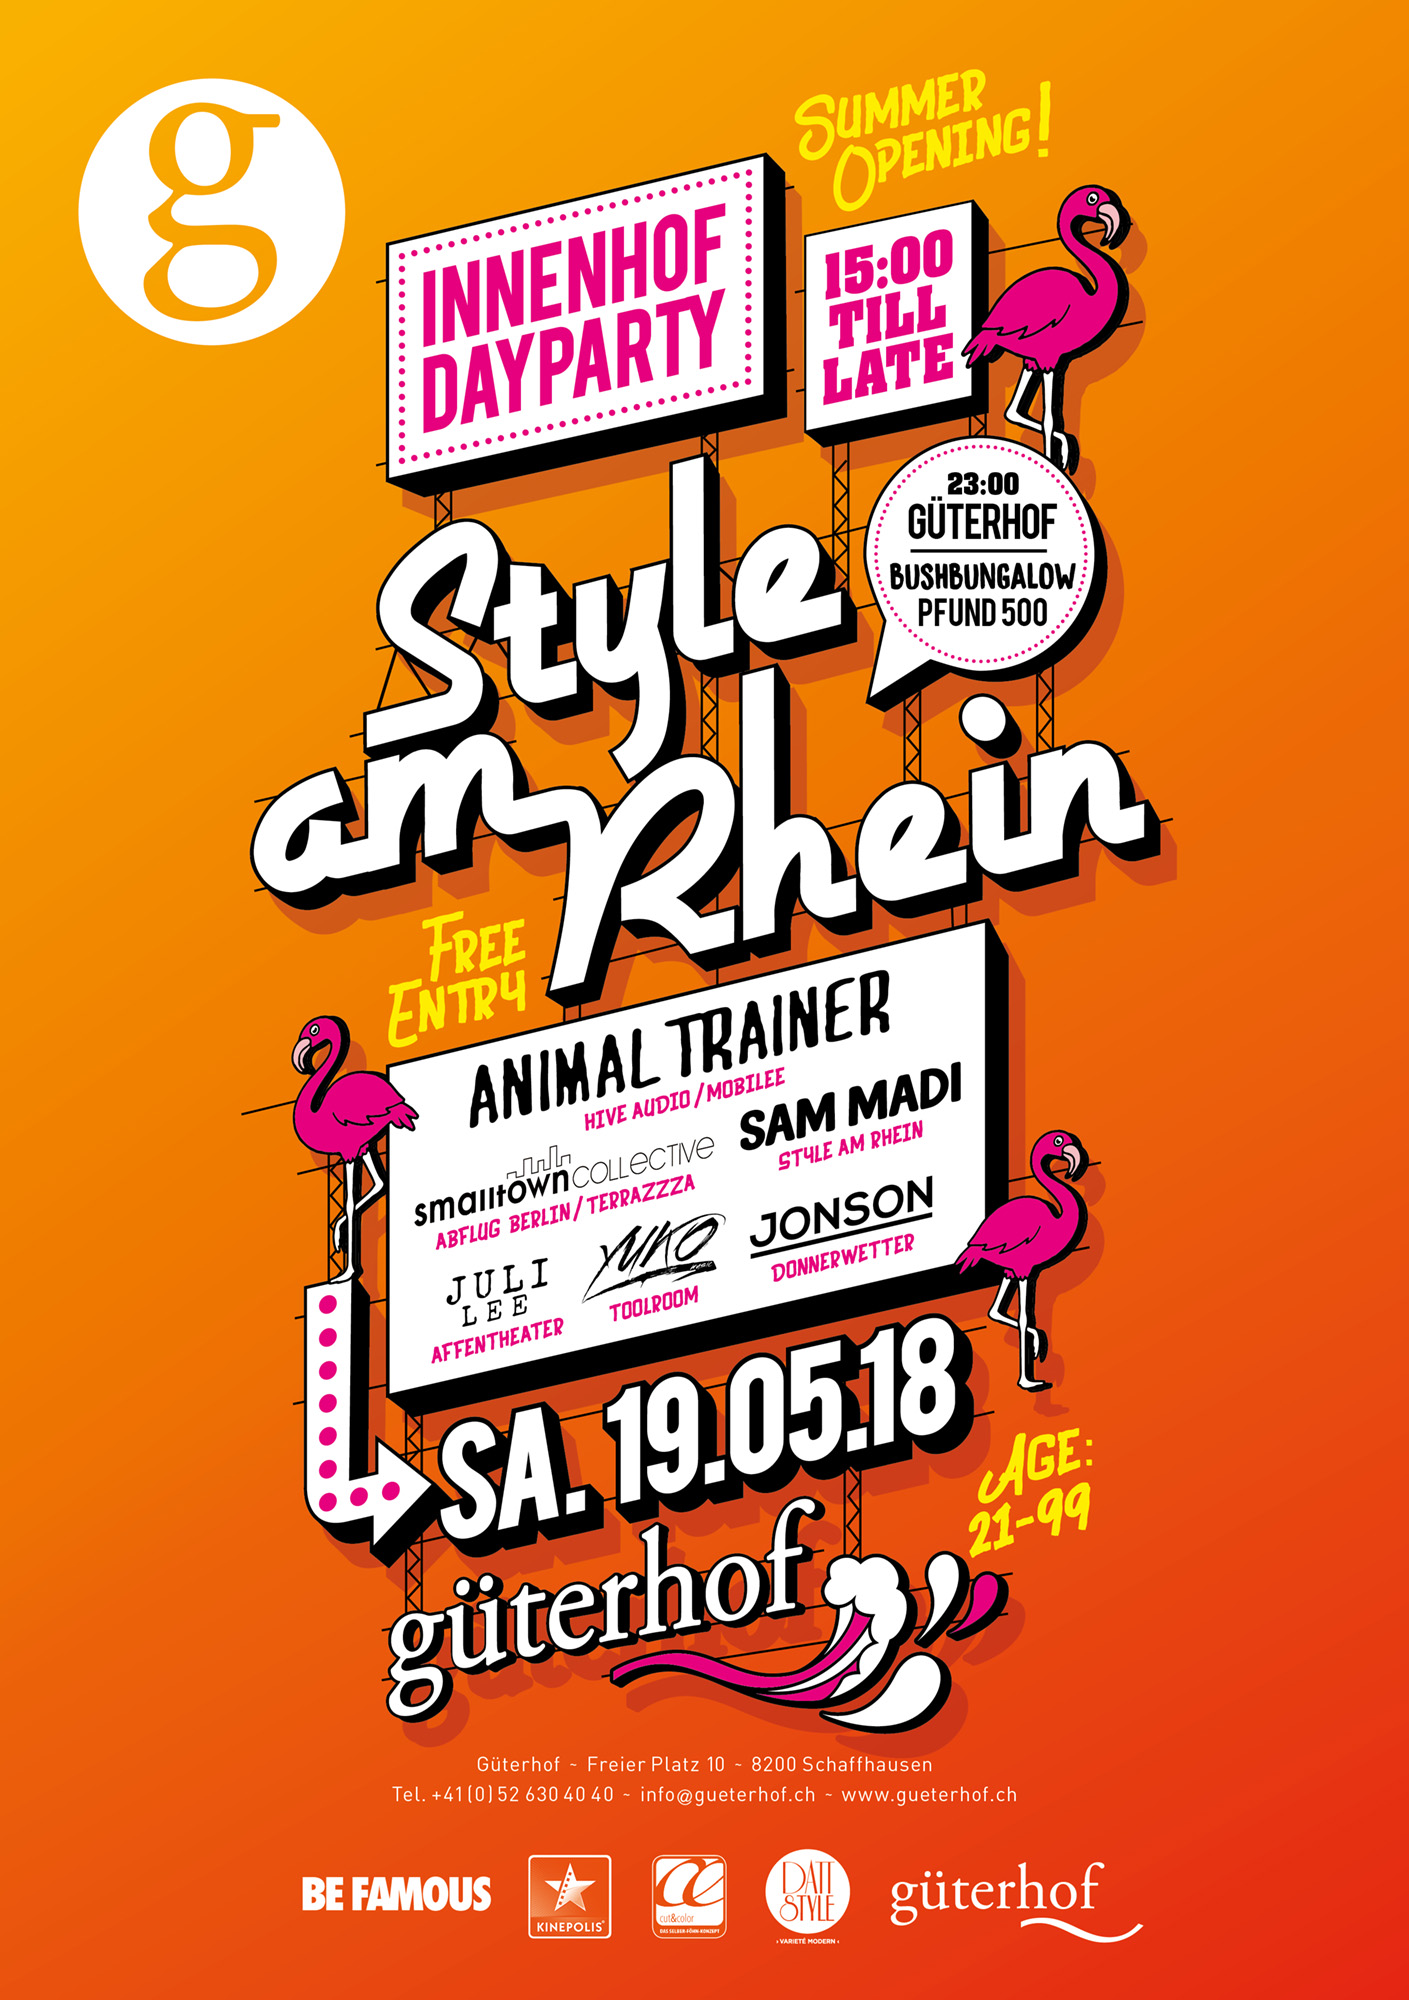 Style am Rhein Summer Opening Day Party